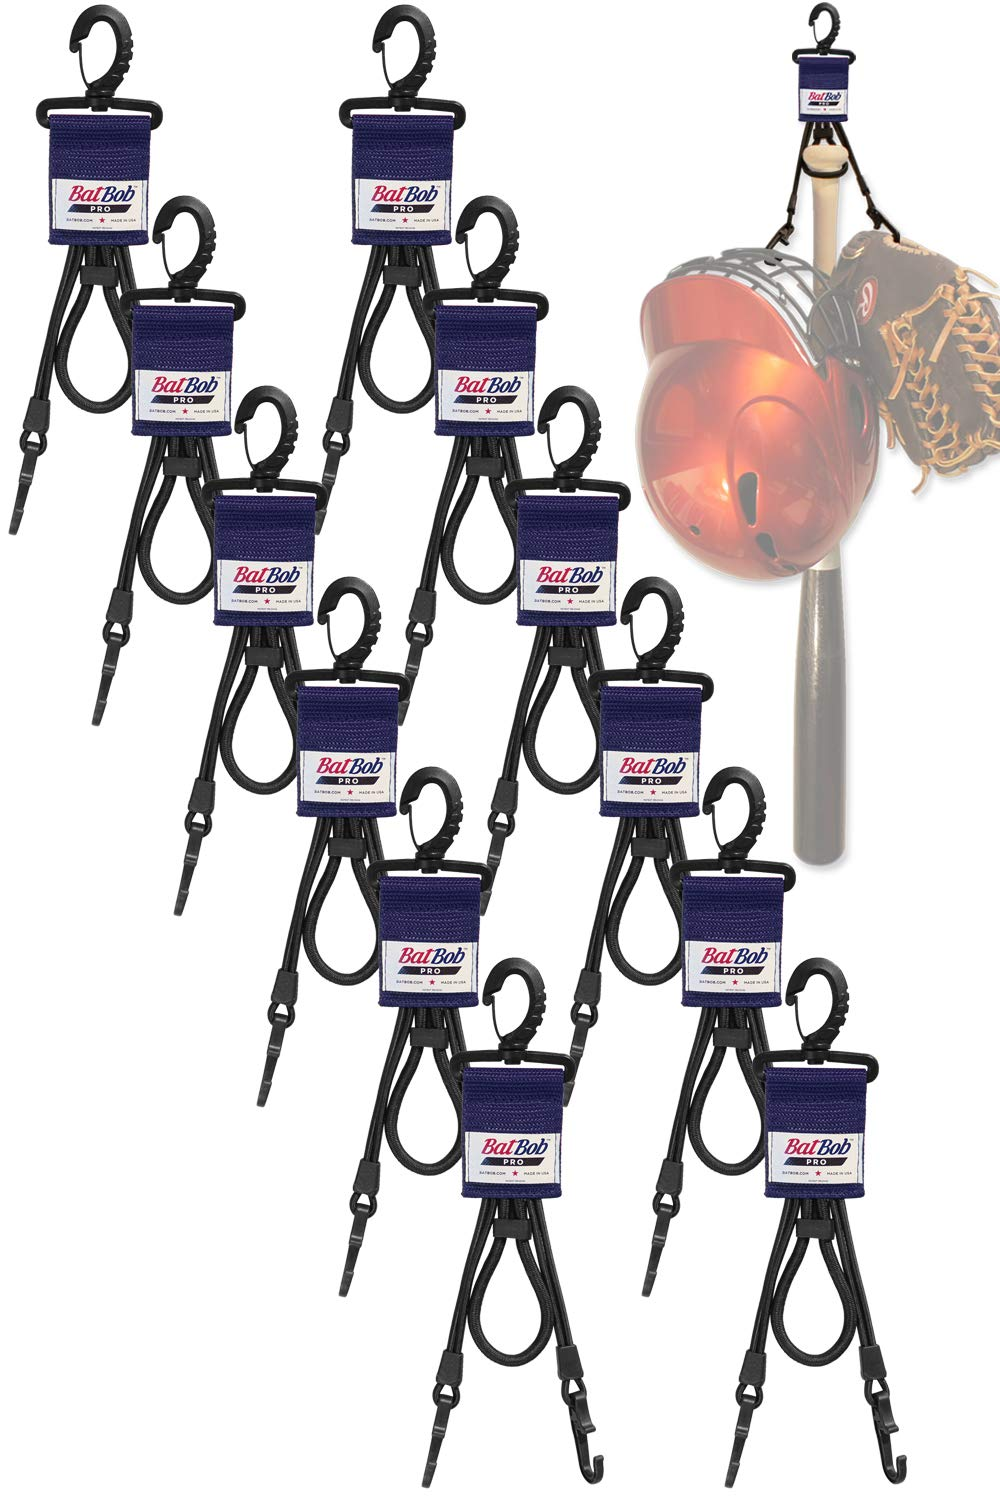 (Team 12 pack) Dugout Gear Hanger - The Dugout Organizer - For Baseball and Softball to hold bats, helmets and gloves (Navy) by BatBob